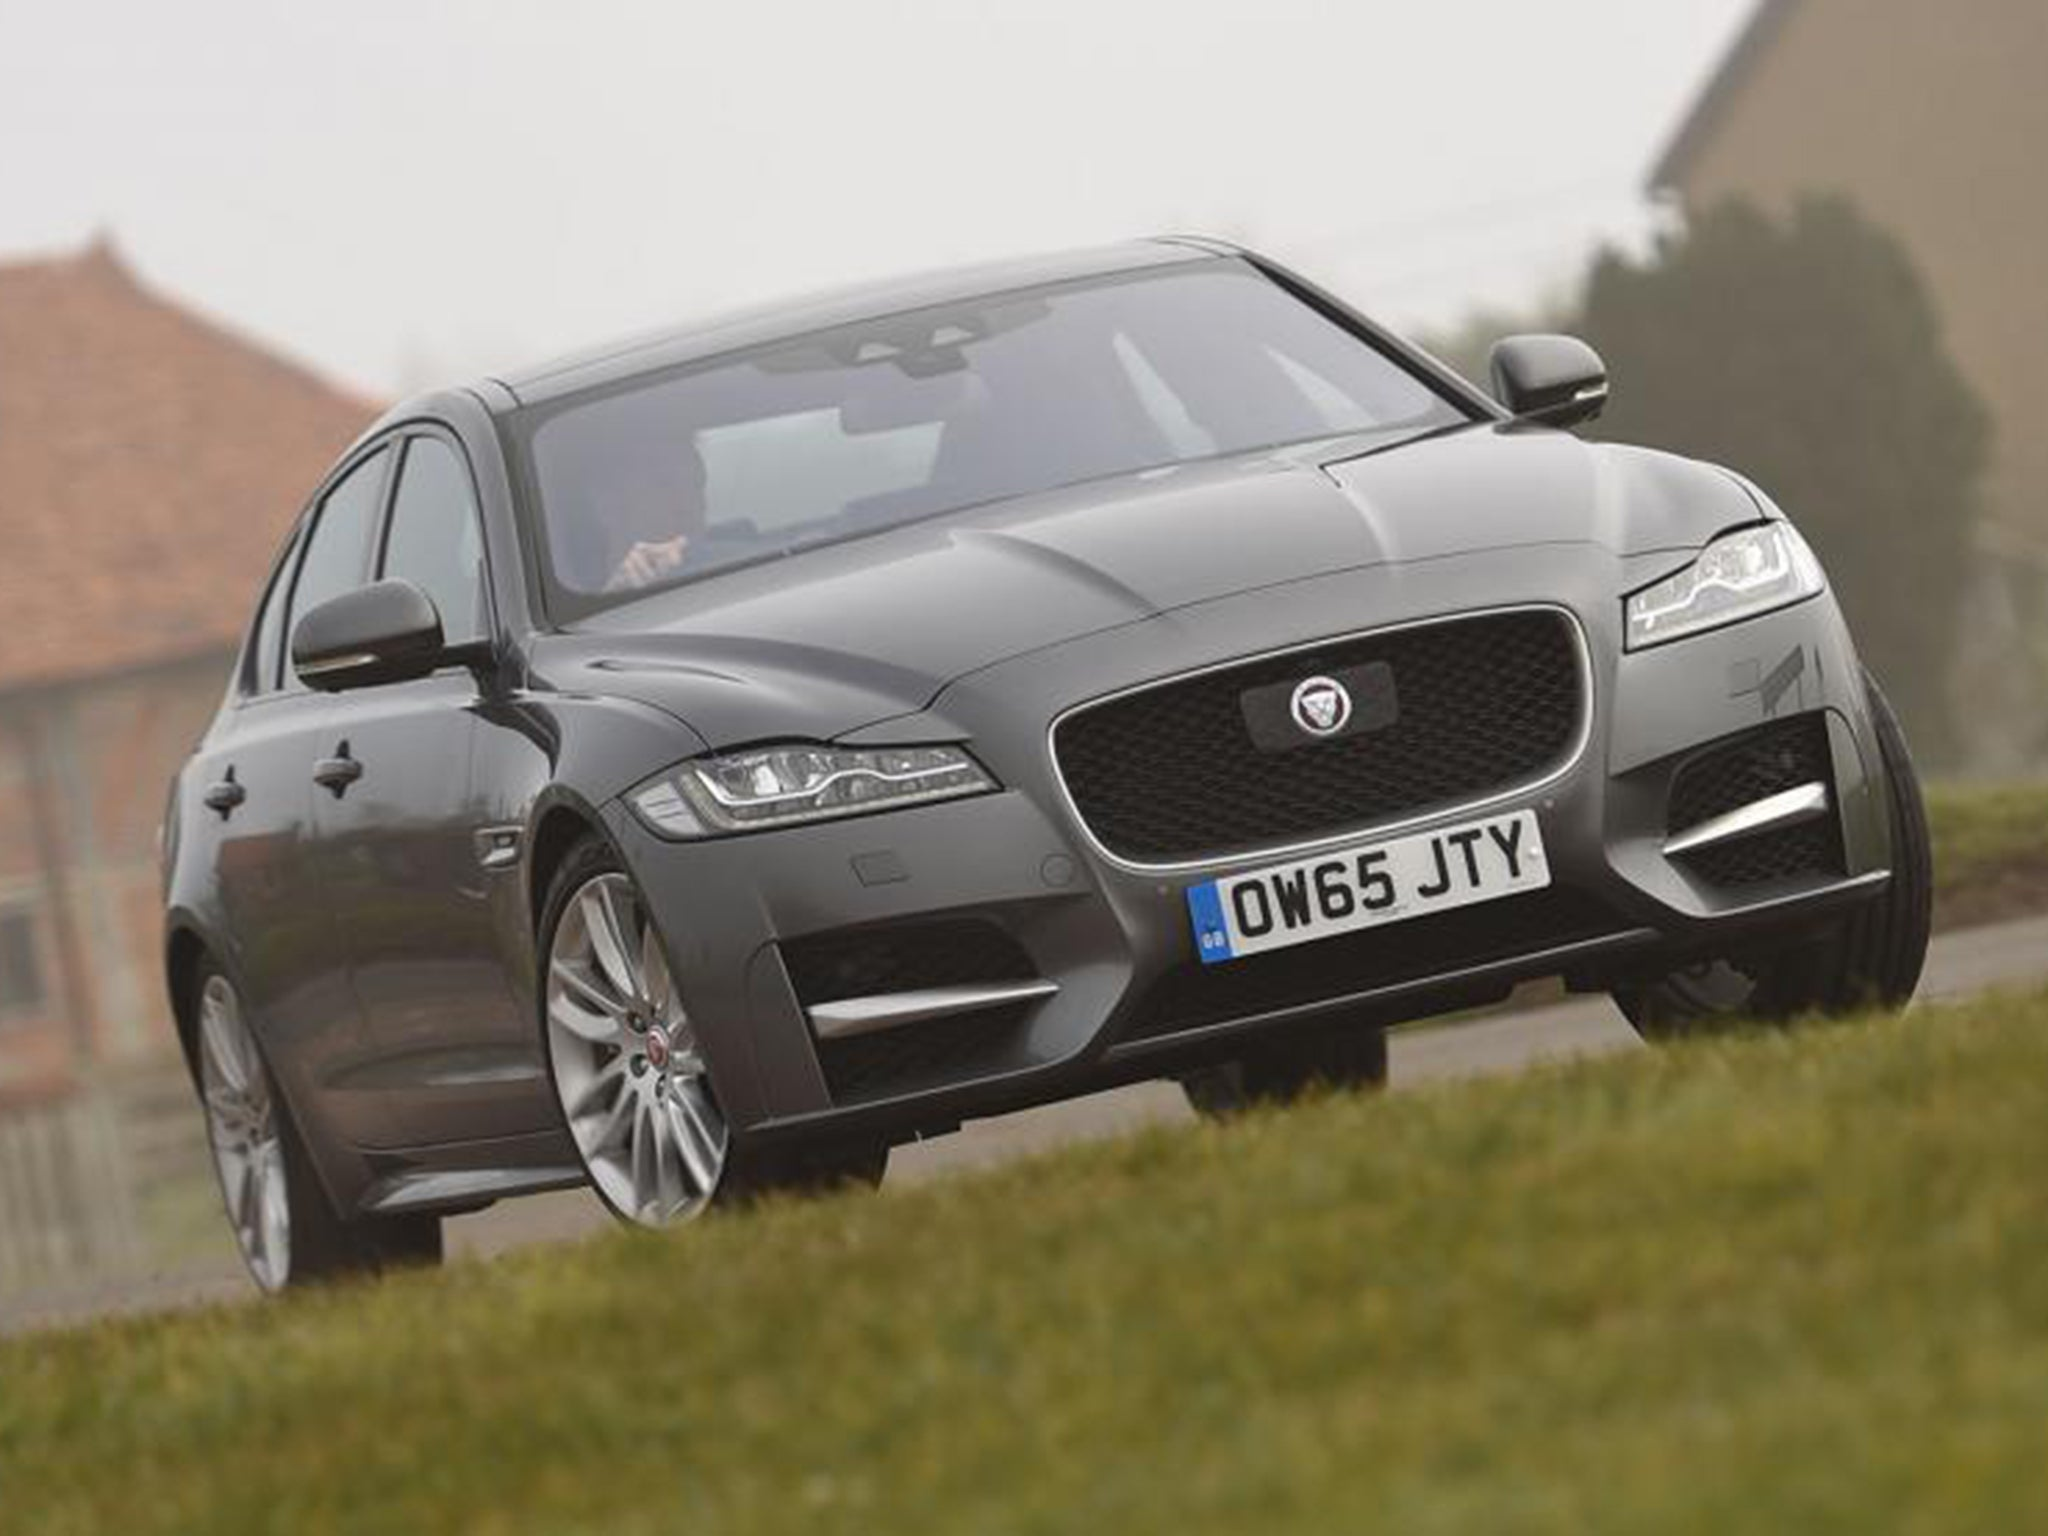 Jaguar xf 2 0d 180 awd r sport car review four wheel drive makes this a car for all roads and weathers the independent